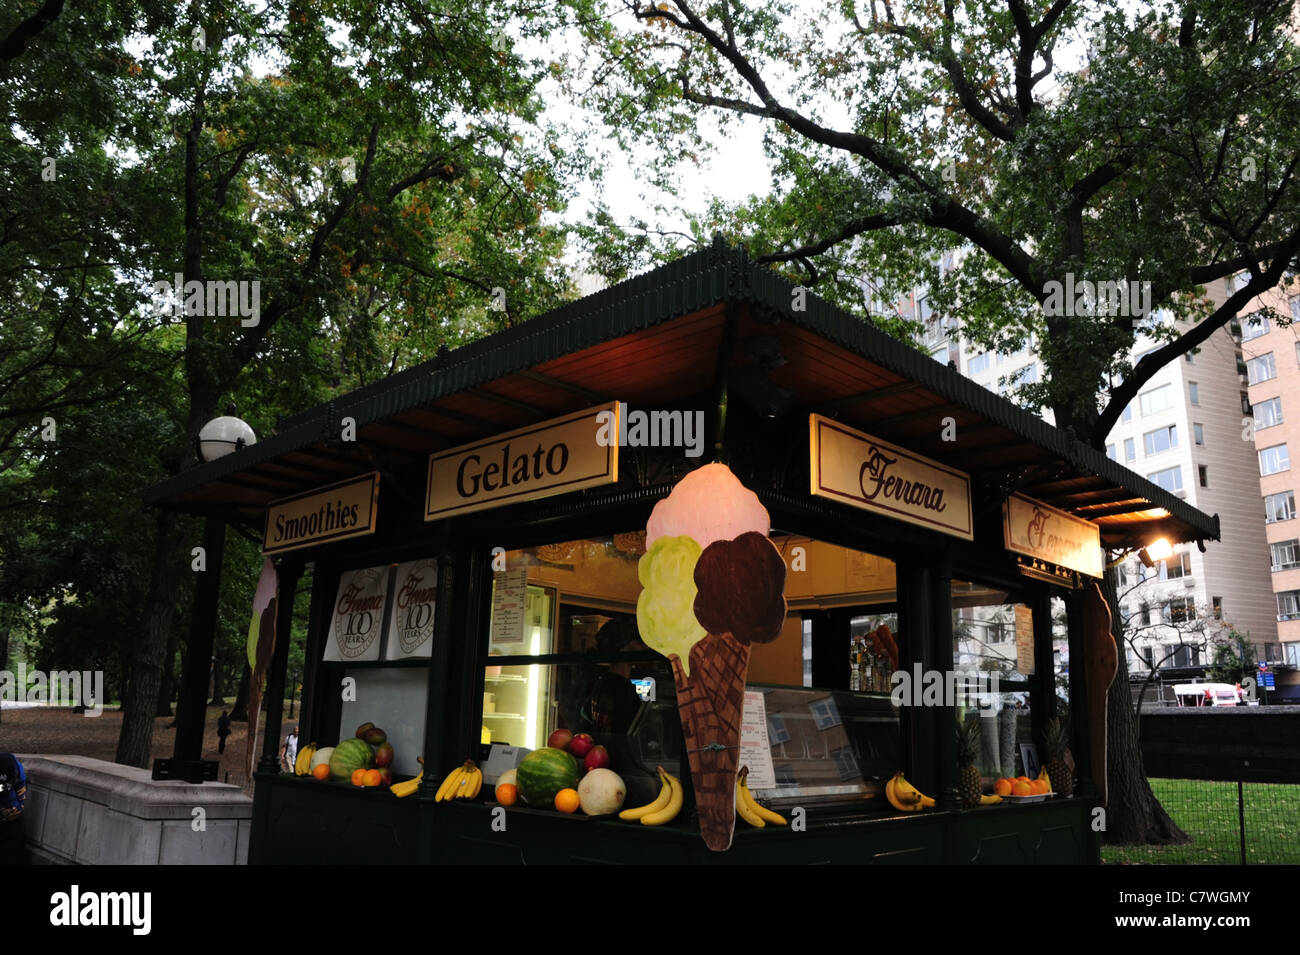 Ferrara Cafe ice cream kiosk, with wall corner illuminated 3 scoop cone cut-out, Merchants' Gate Plaza, Central - Stock Image